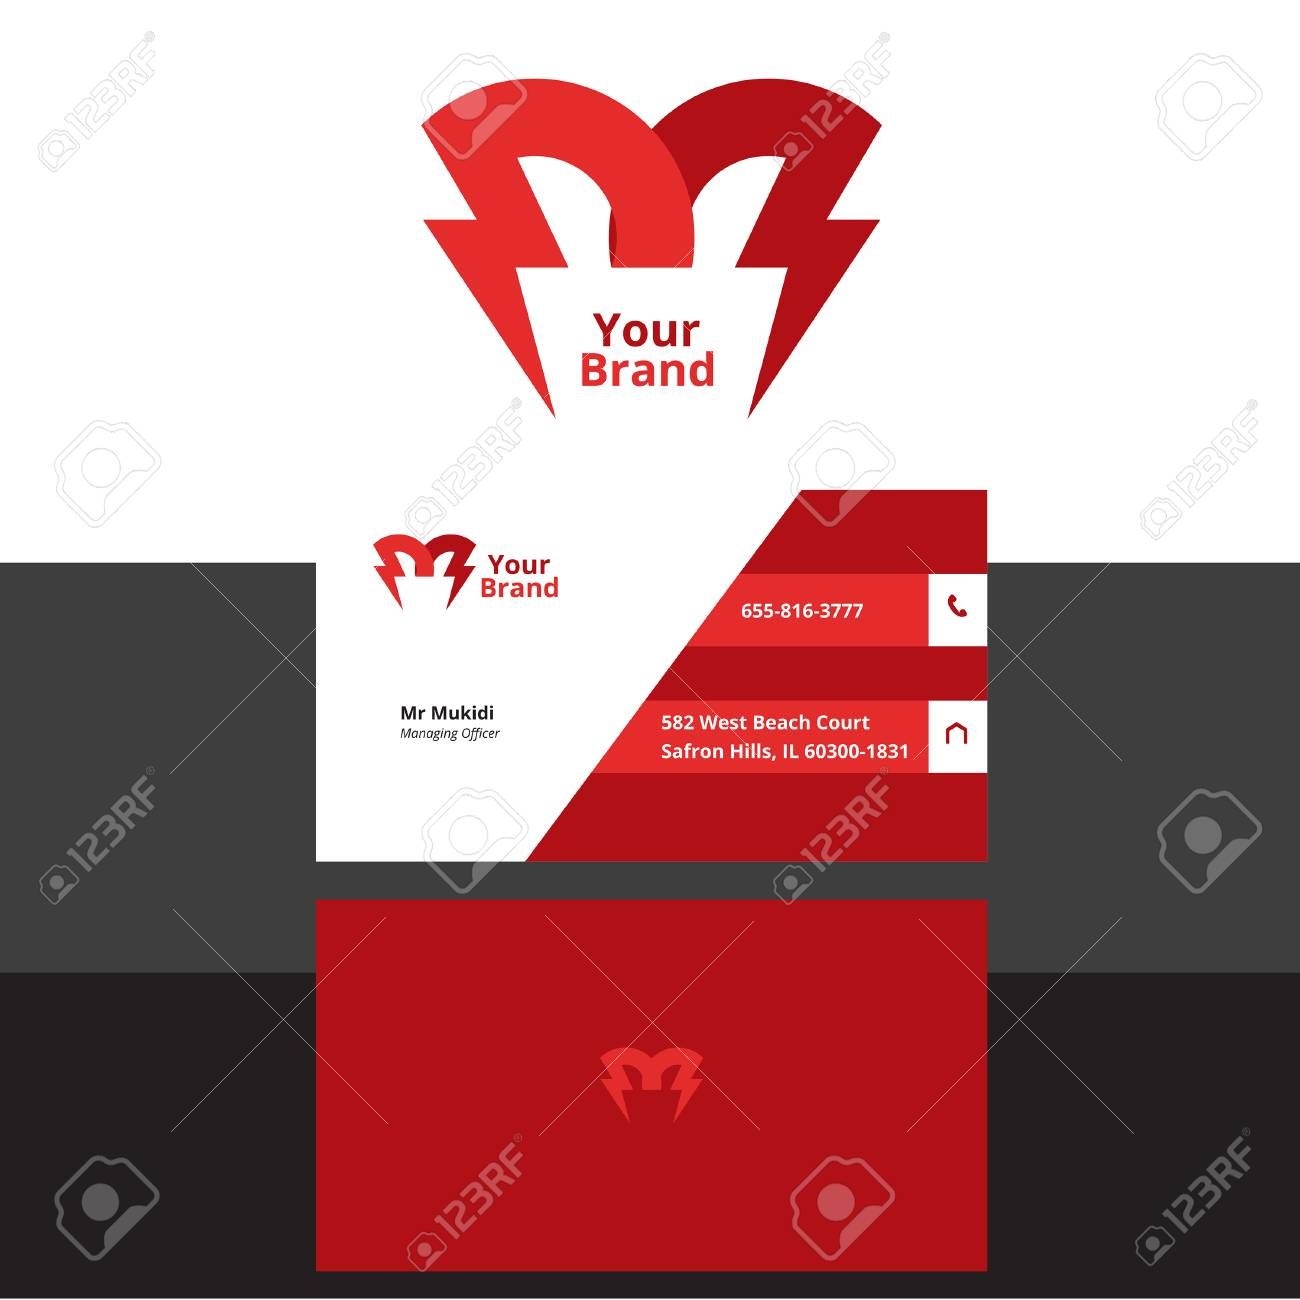 Electrical logo plus business card royalty free cliparts vectors electrical logo plus business card stock vector 75764461 colourmoves